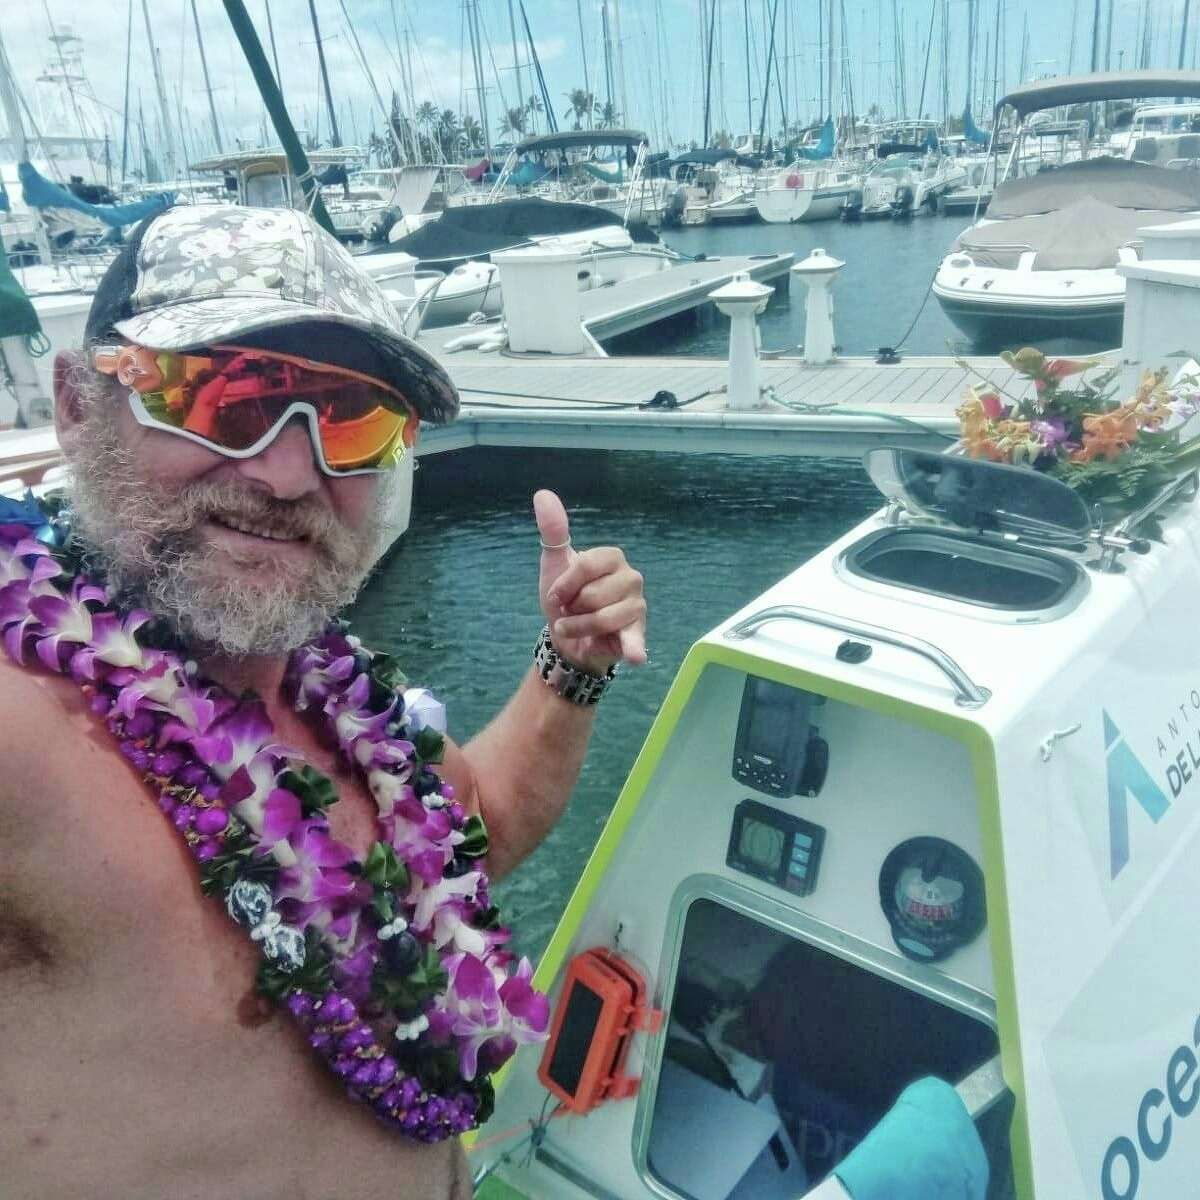 50-year-old Antonio de la Rosa was the first to navigate across the Pacific Ocean on a stand-up paddleboard.